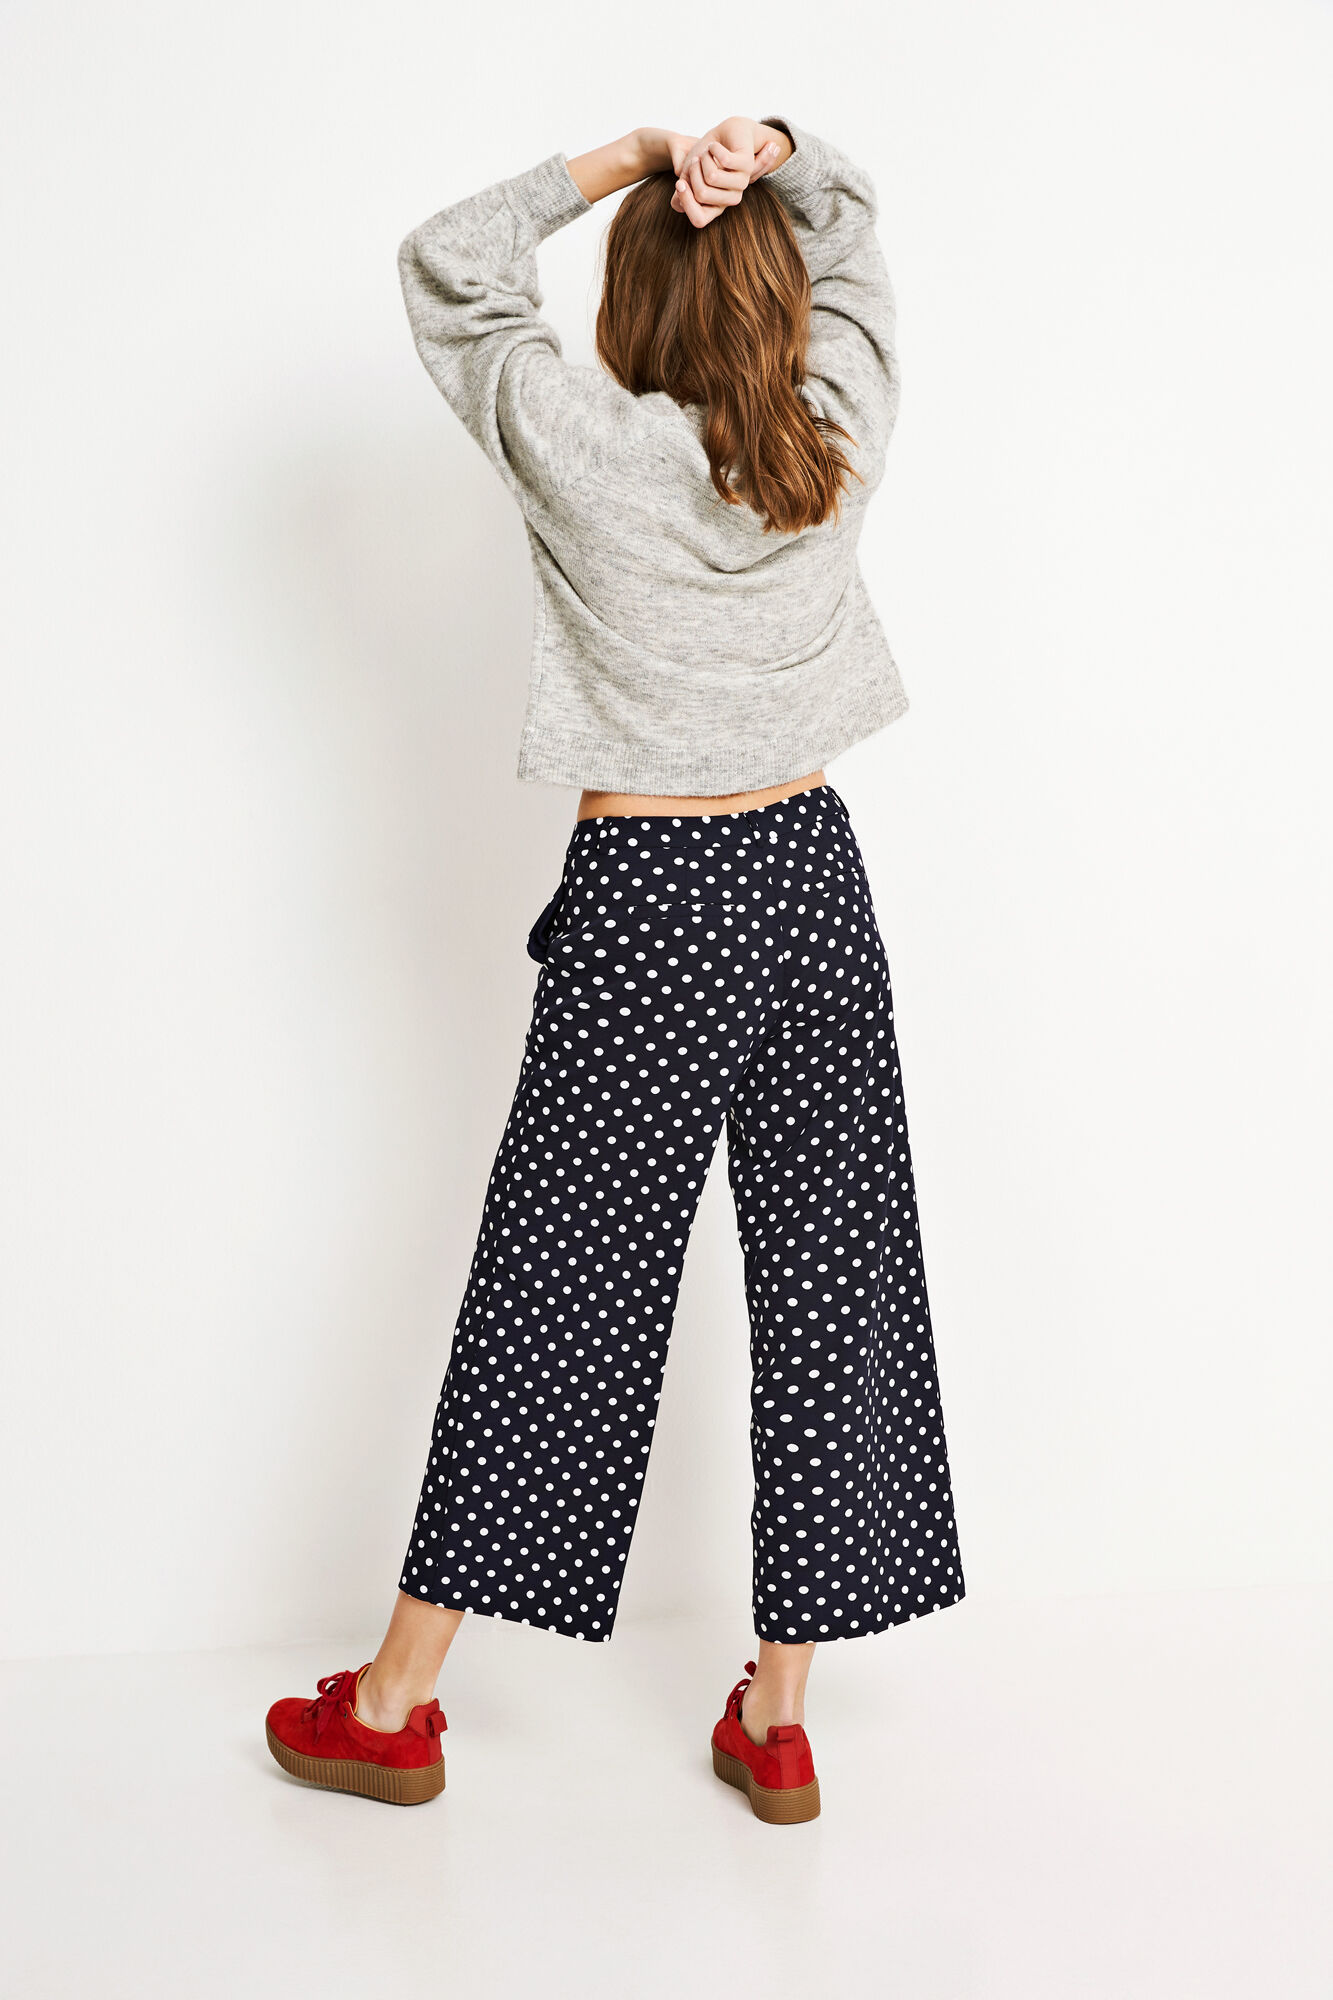 ENNITRO PANTS AOP 6417, NAVY DOT BIG